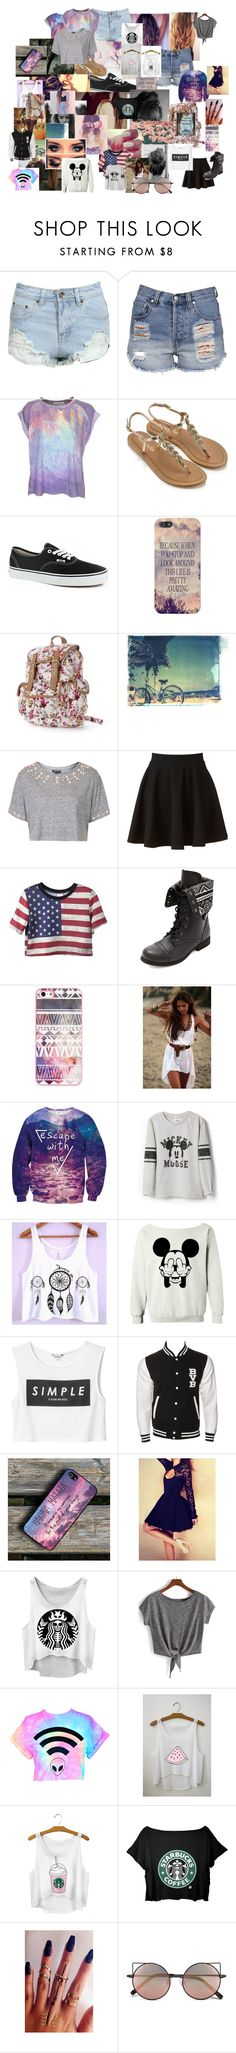 """""""Sem título #290"""" by dianakrueger02 ❤ liked on Polyvore featuring beauty, Neon Hart, Wildfox, Accessorize, Vans, Candie's, She Hit Pause Studios, Topshop, LC Lauren Conrad and Charlotte Russe"""